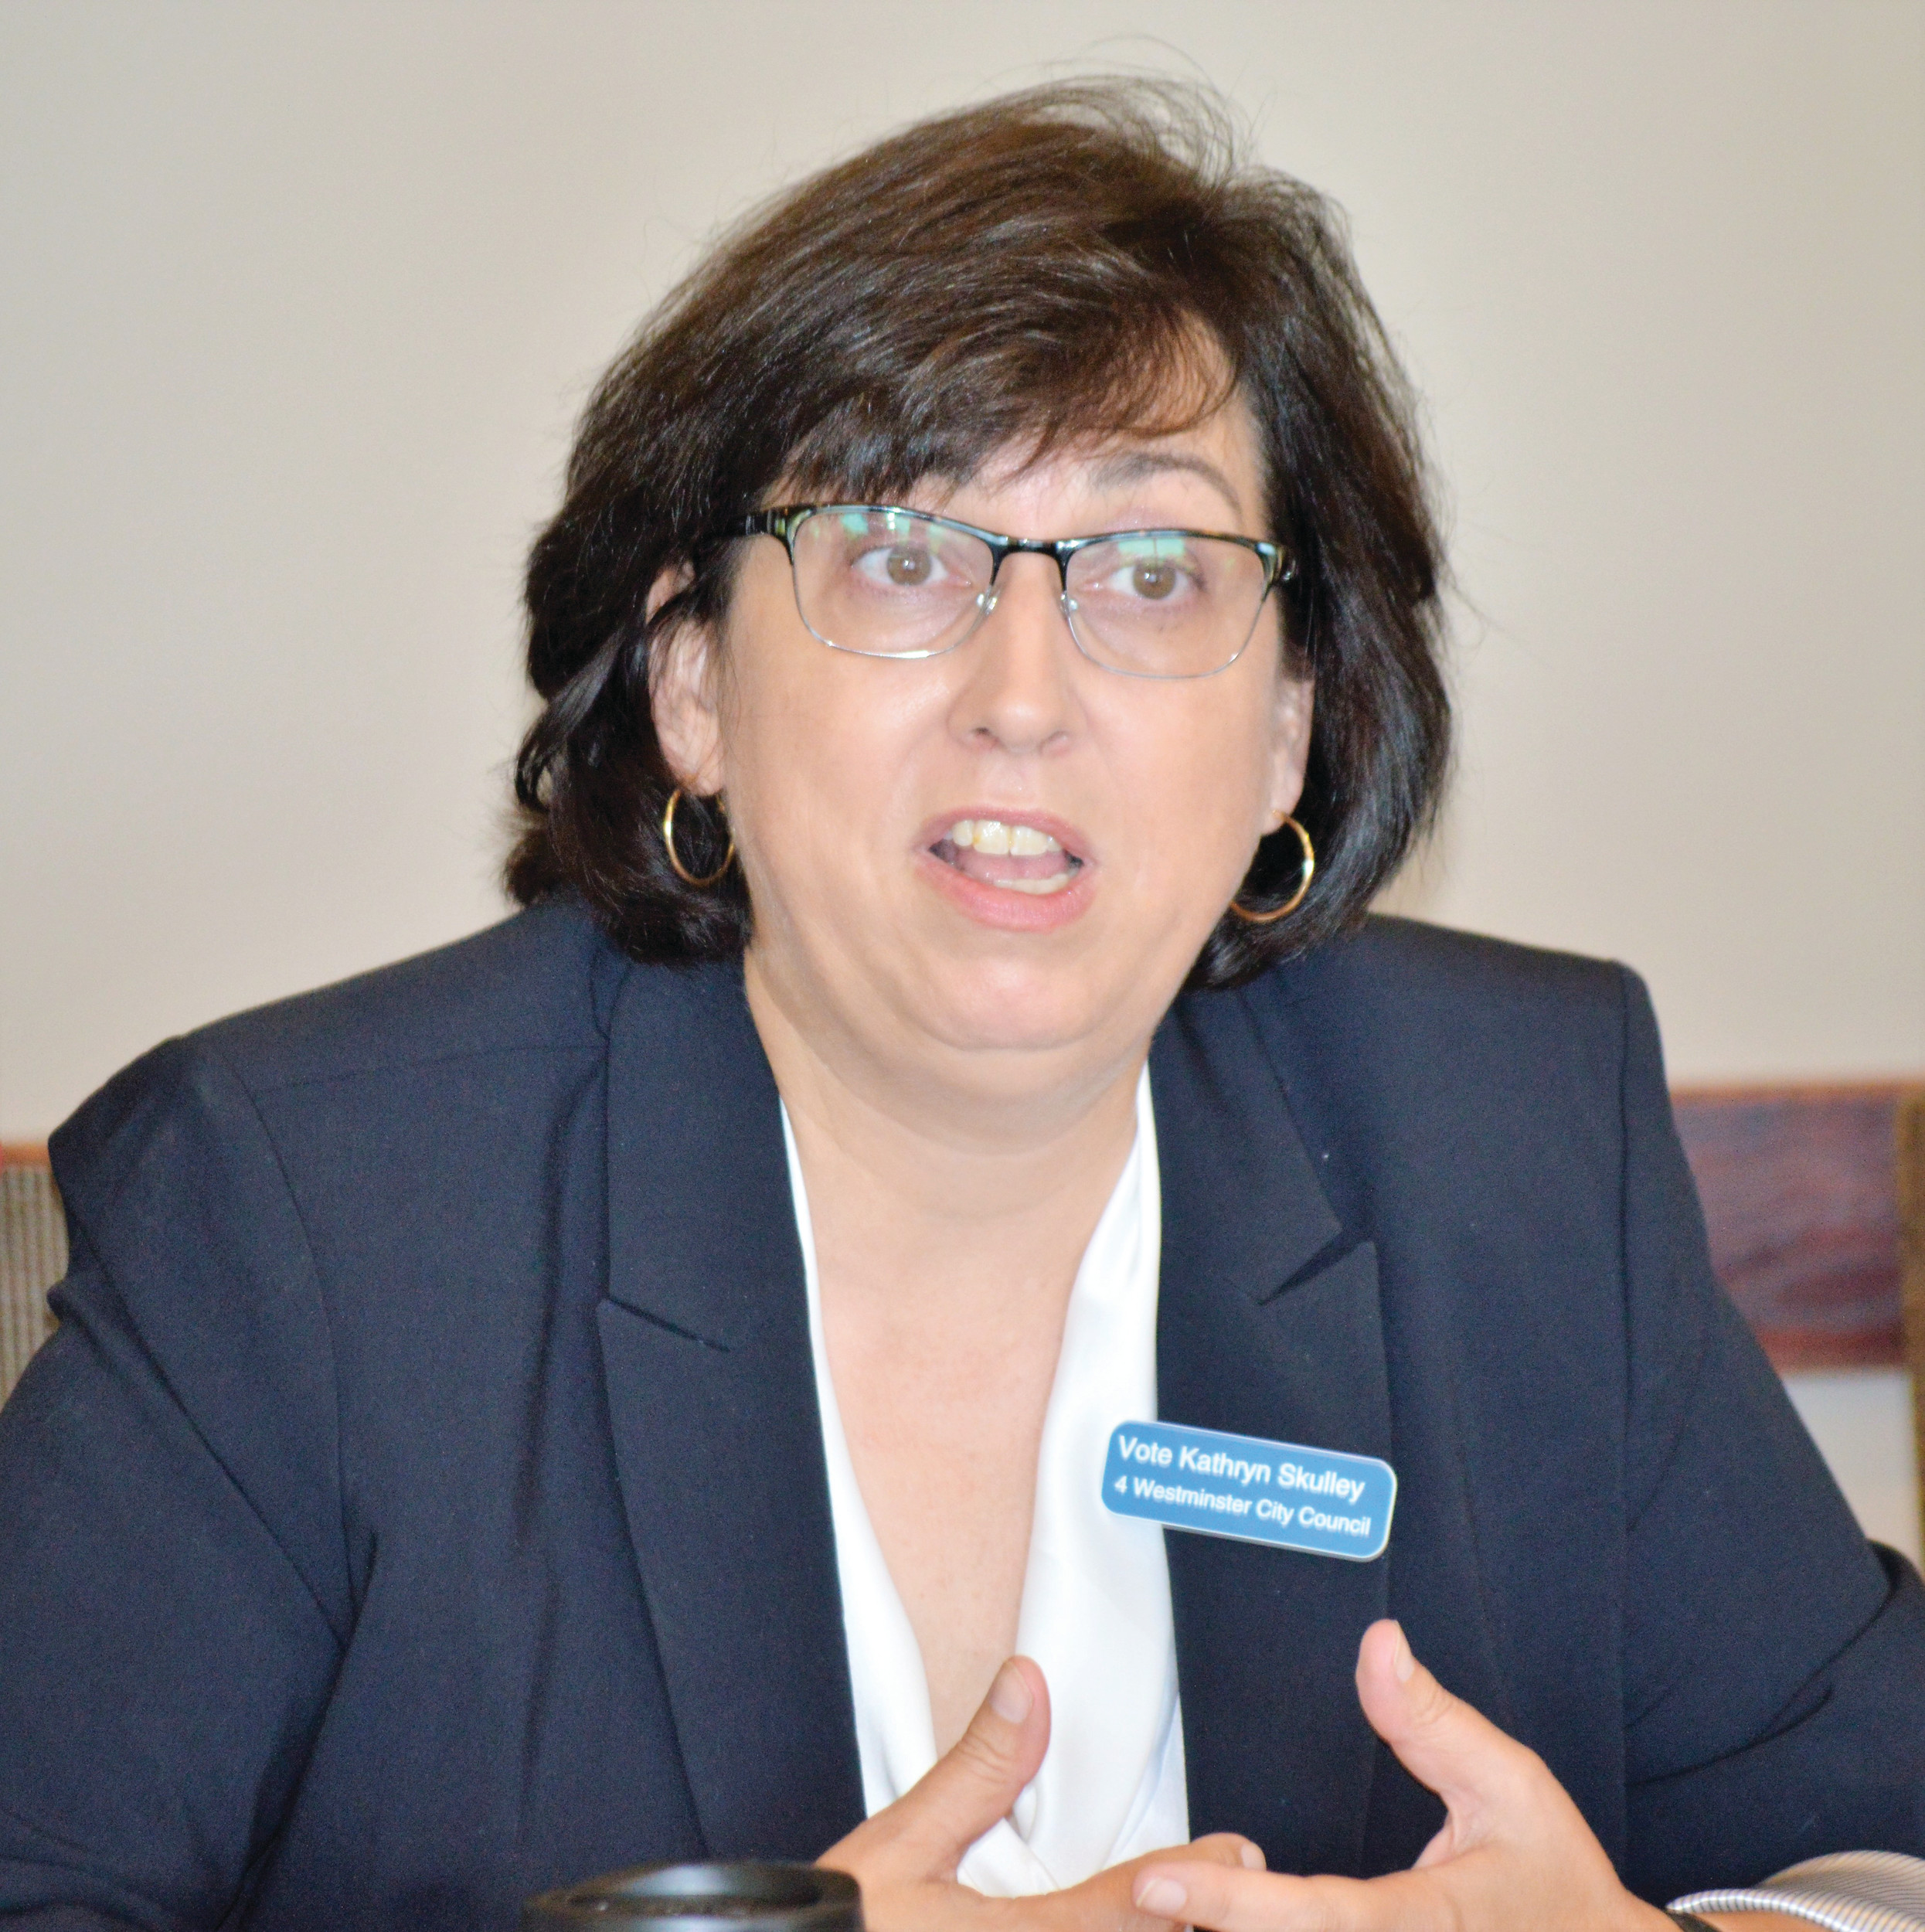 Westminster City Council candidate Kathryn Skully speaks at the Jeff-West Community Forum Aug. 25.